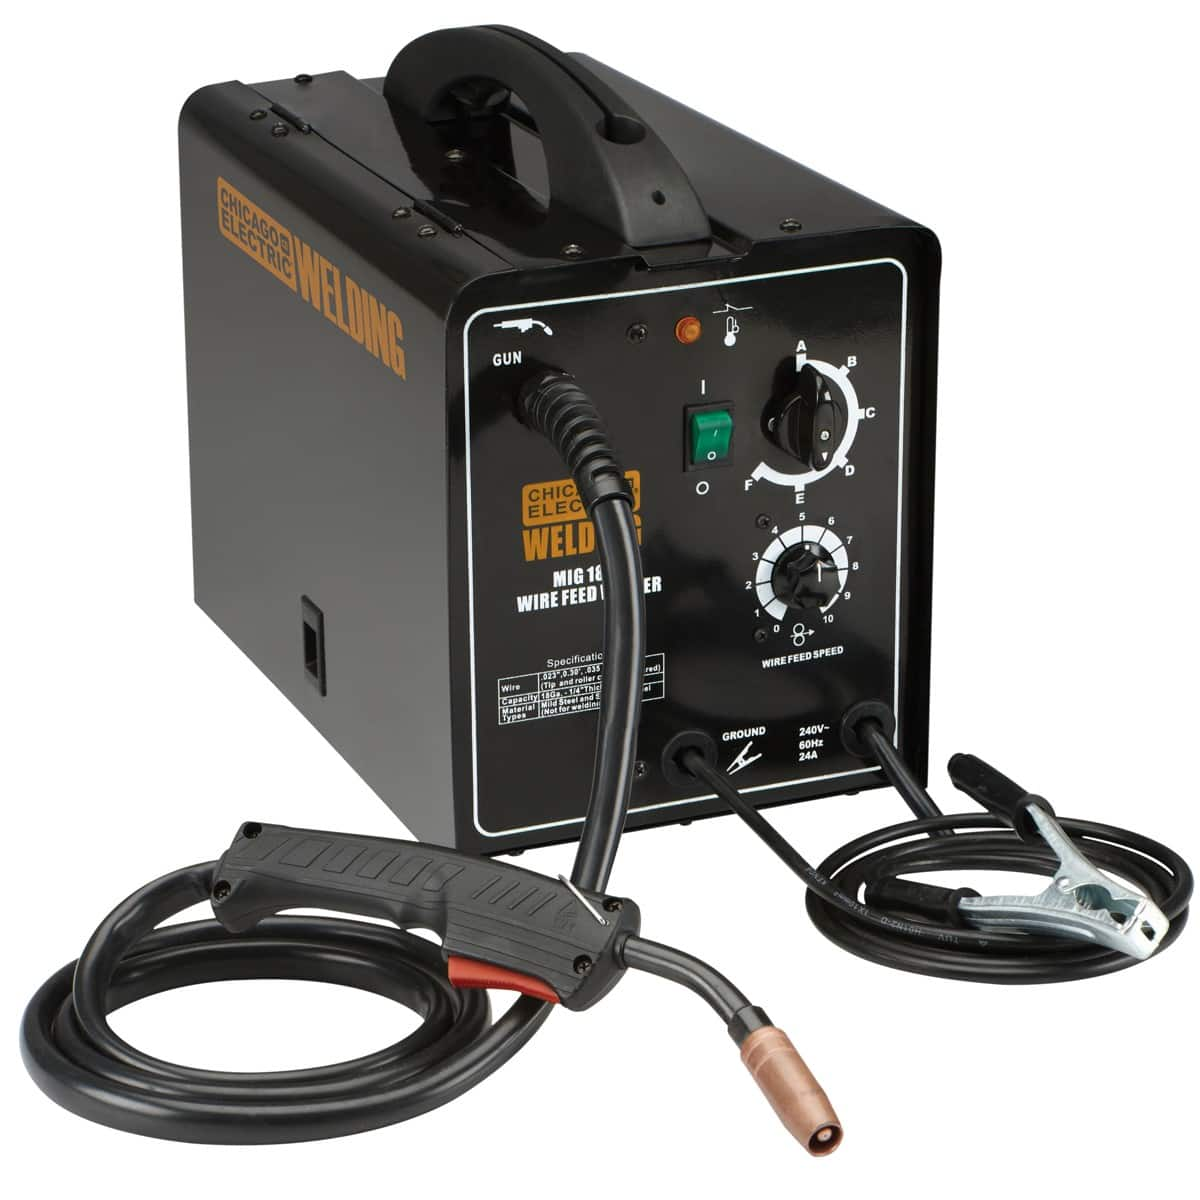 Harbor Freight 180 Amp-DC, 240 Volt, MIG/Flux Cored Welder $249 on sale for $174.98 in store or shipping $6.99 ends Tonight!